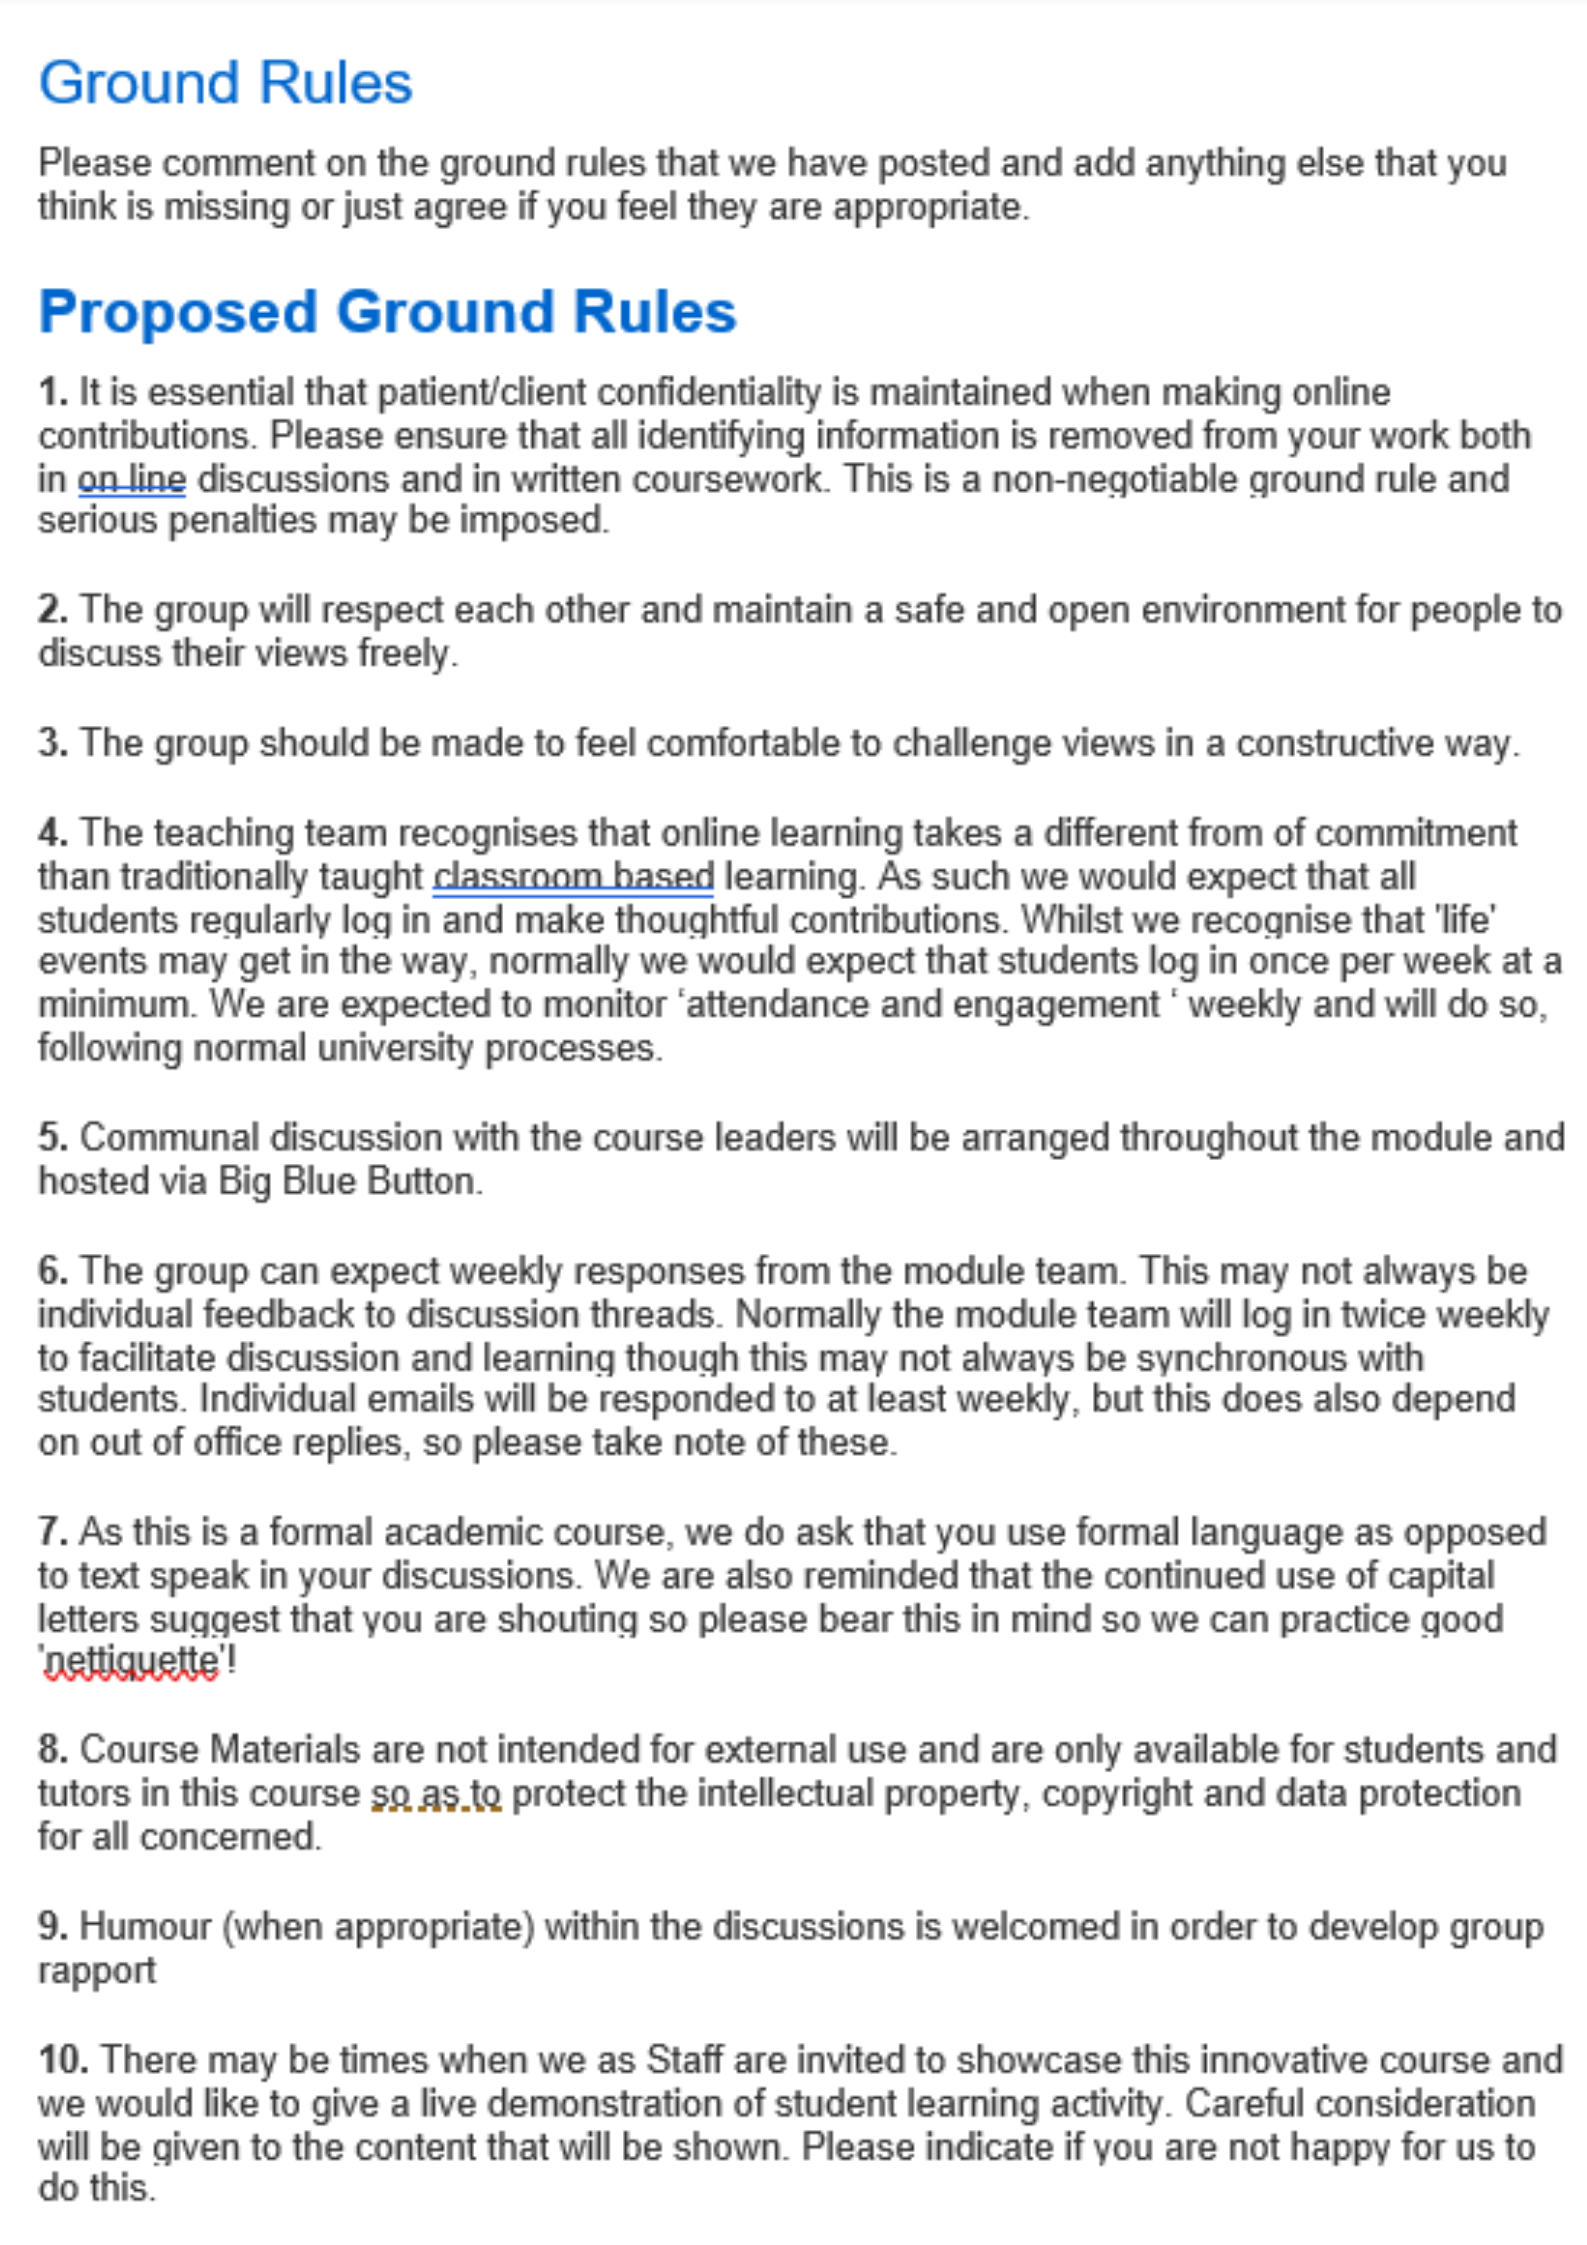 ground rules for online discussion